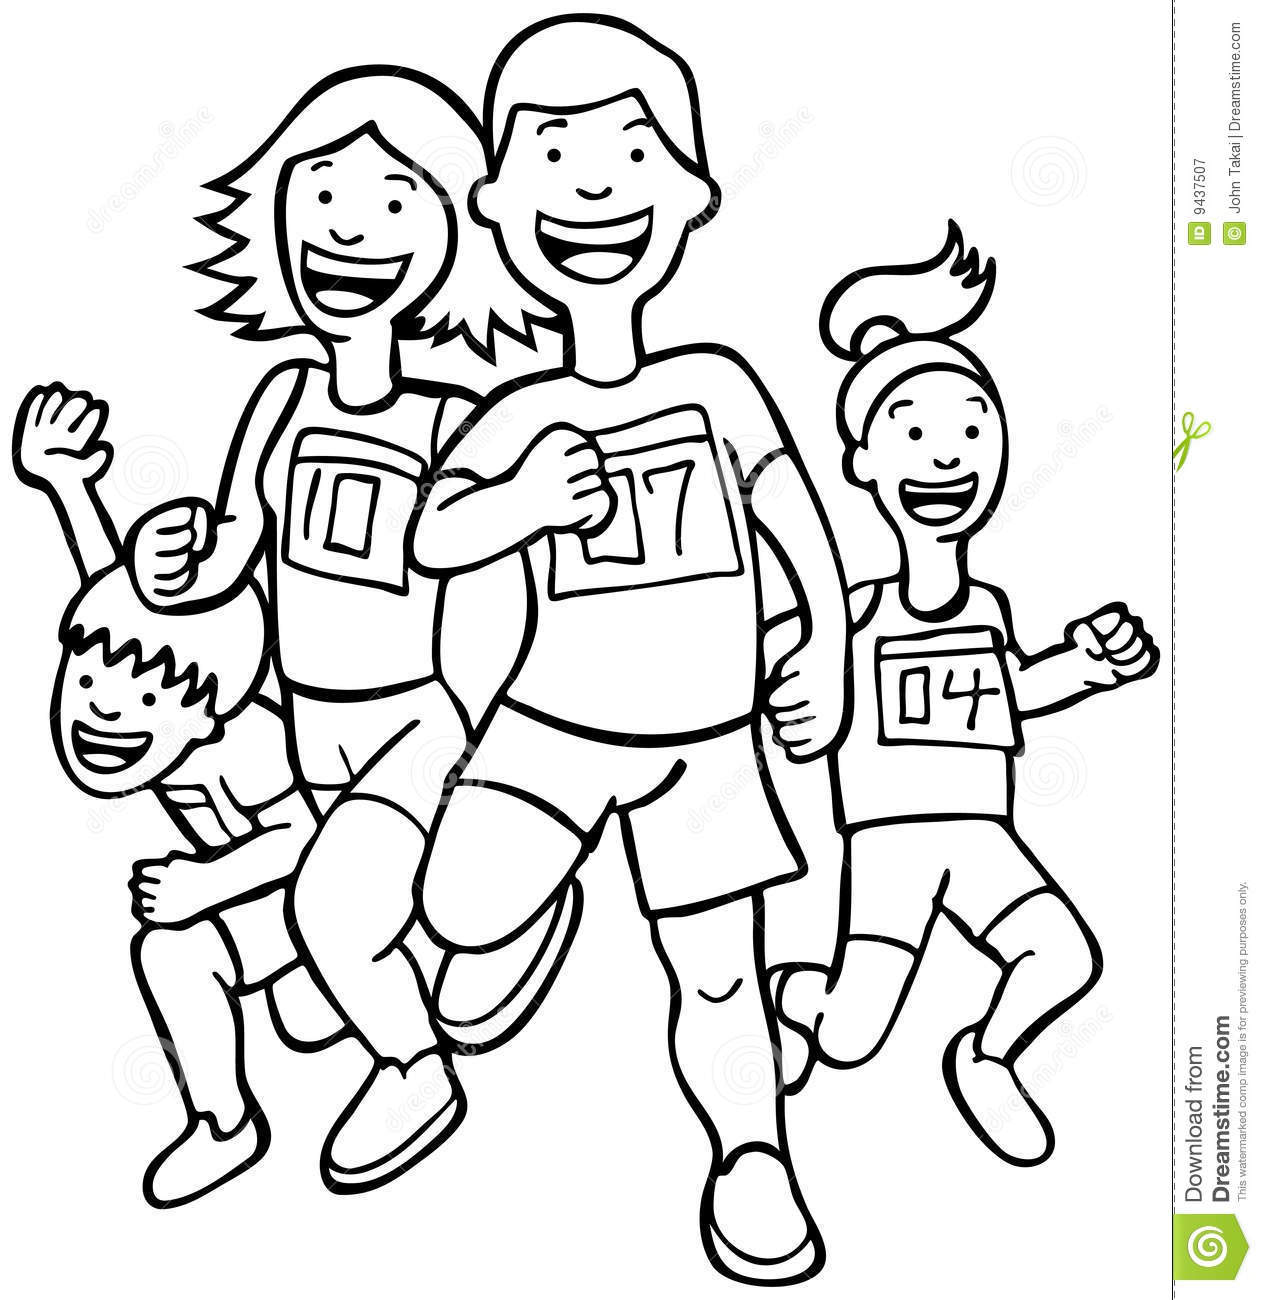 people%20running%20a%20race%20clipart